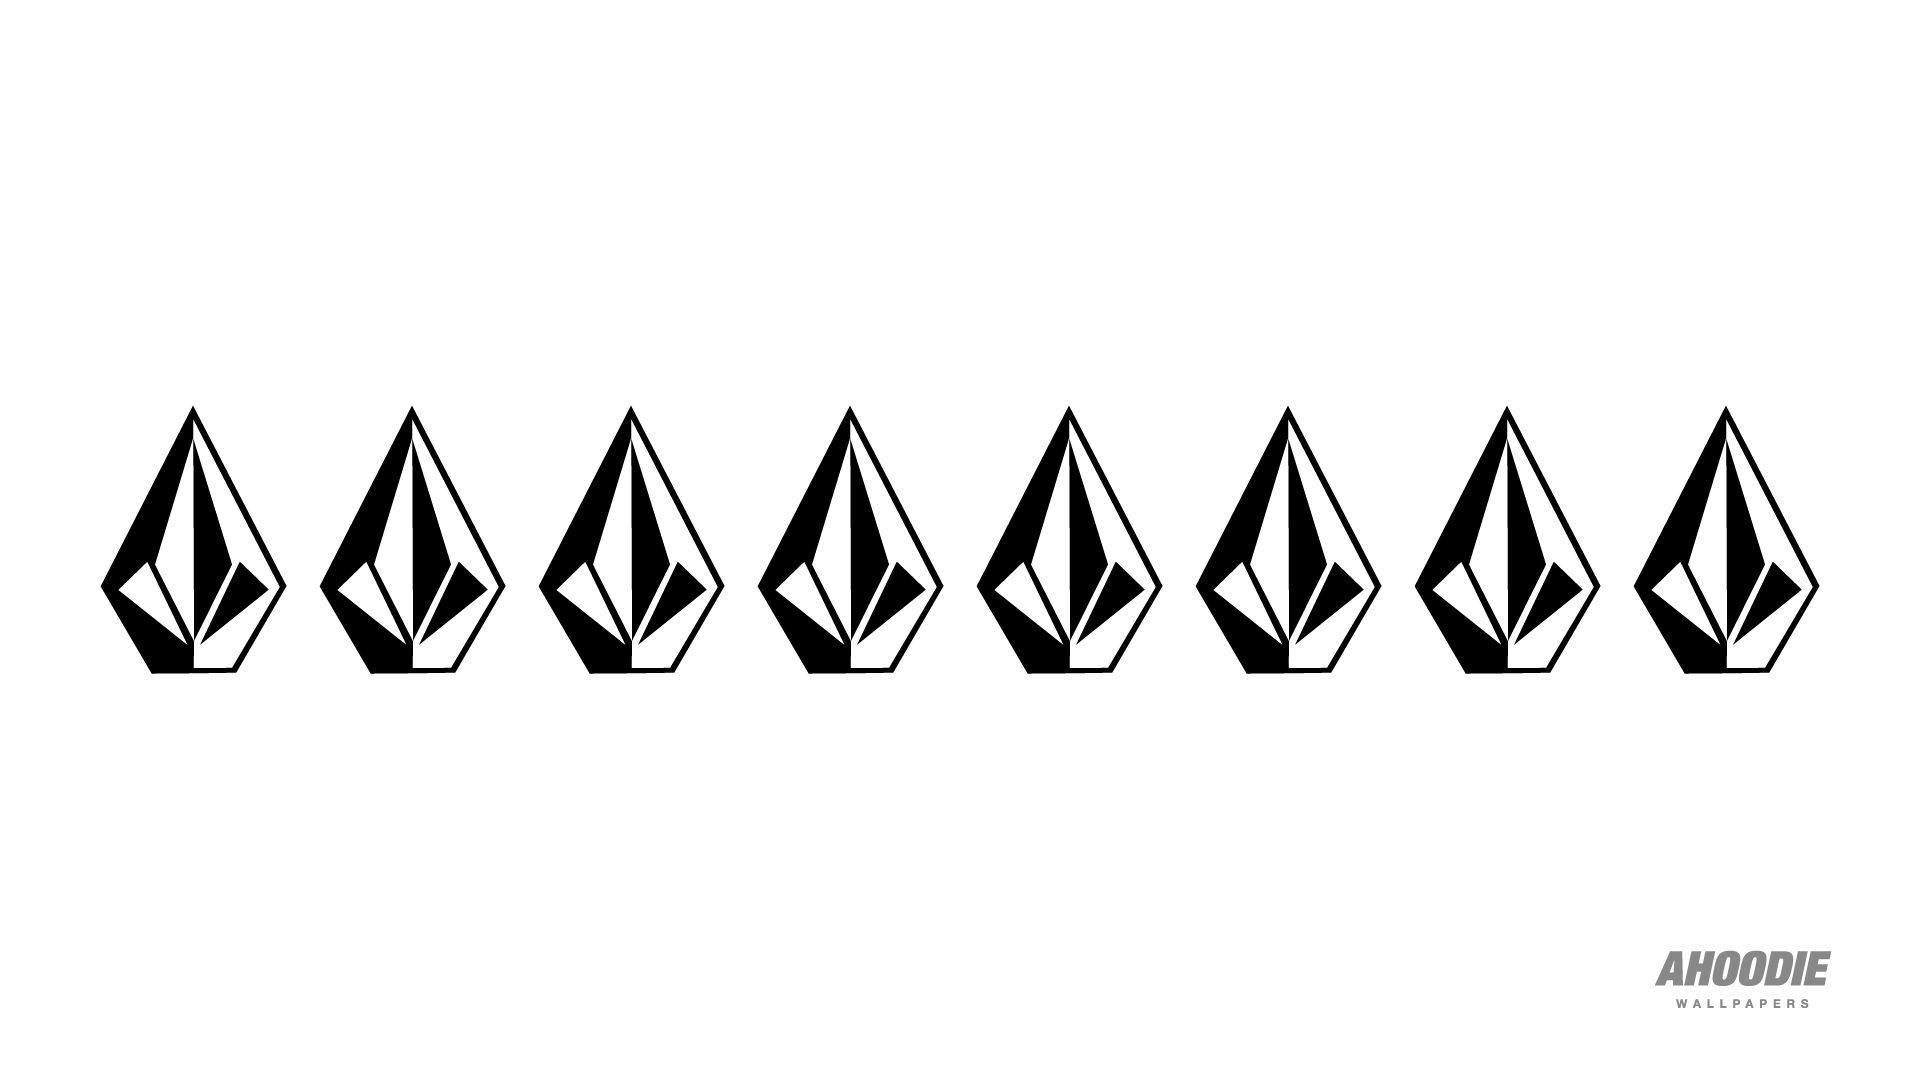 1920x1080 volcom logo wallpapers ...